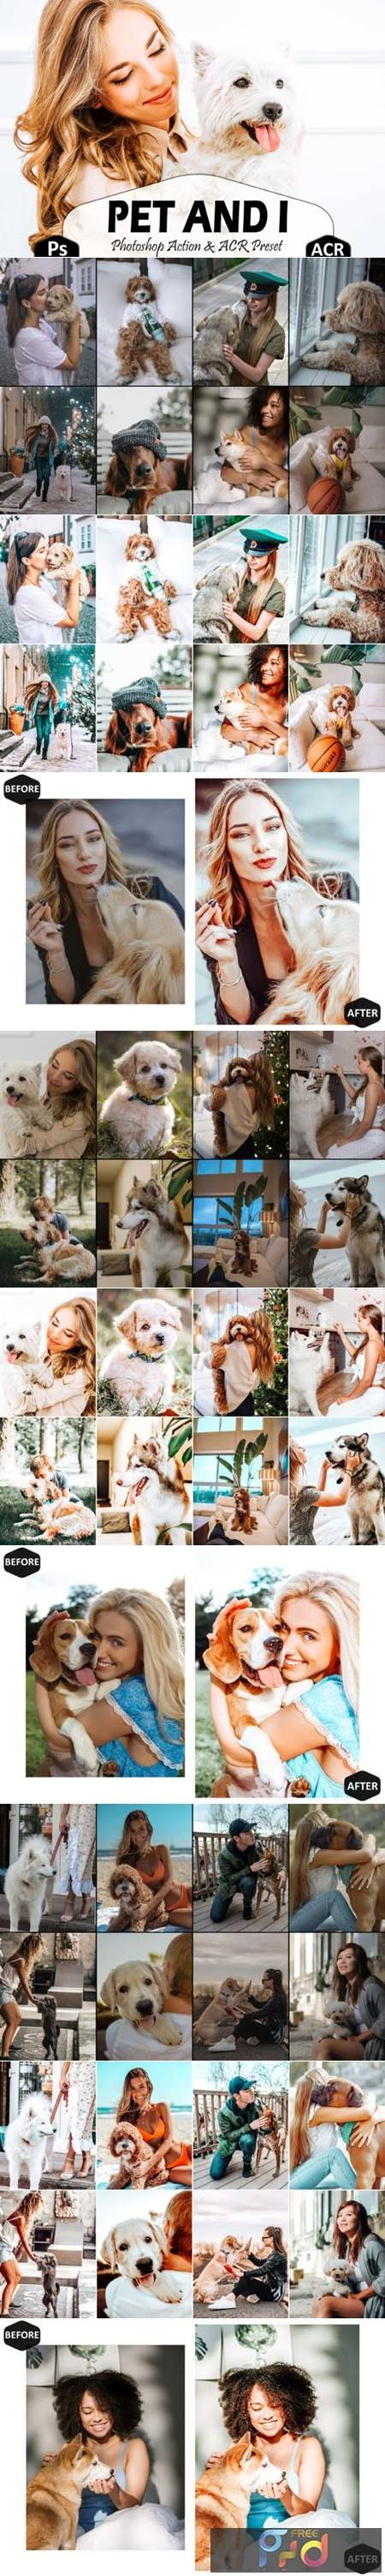 10 Pet and I Photoshop Actions Ps Preset 5916916 1